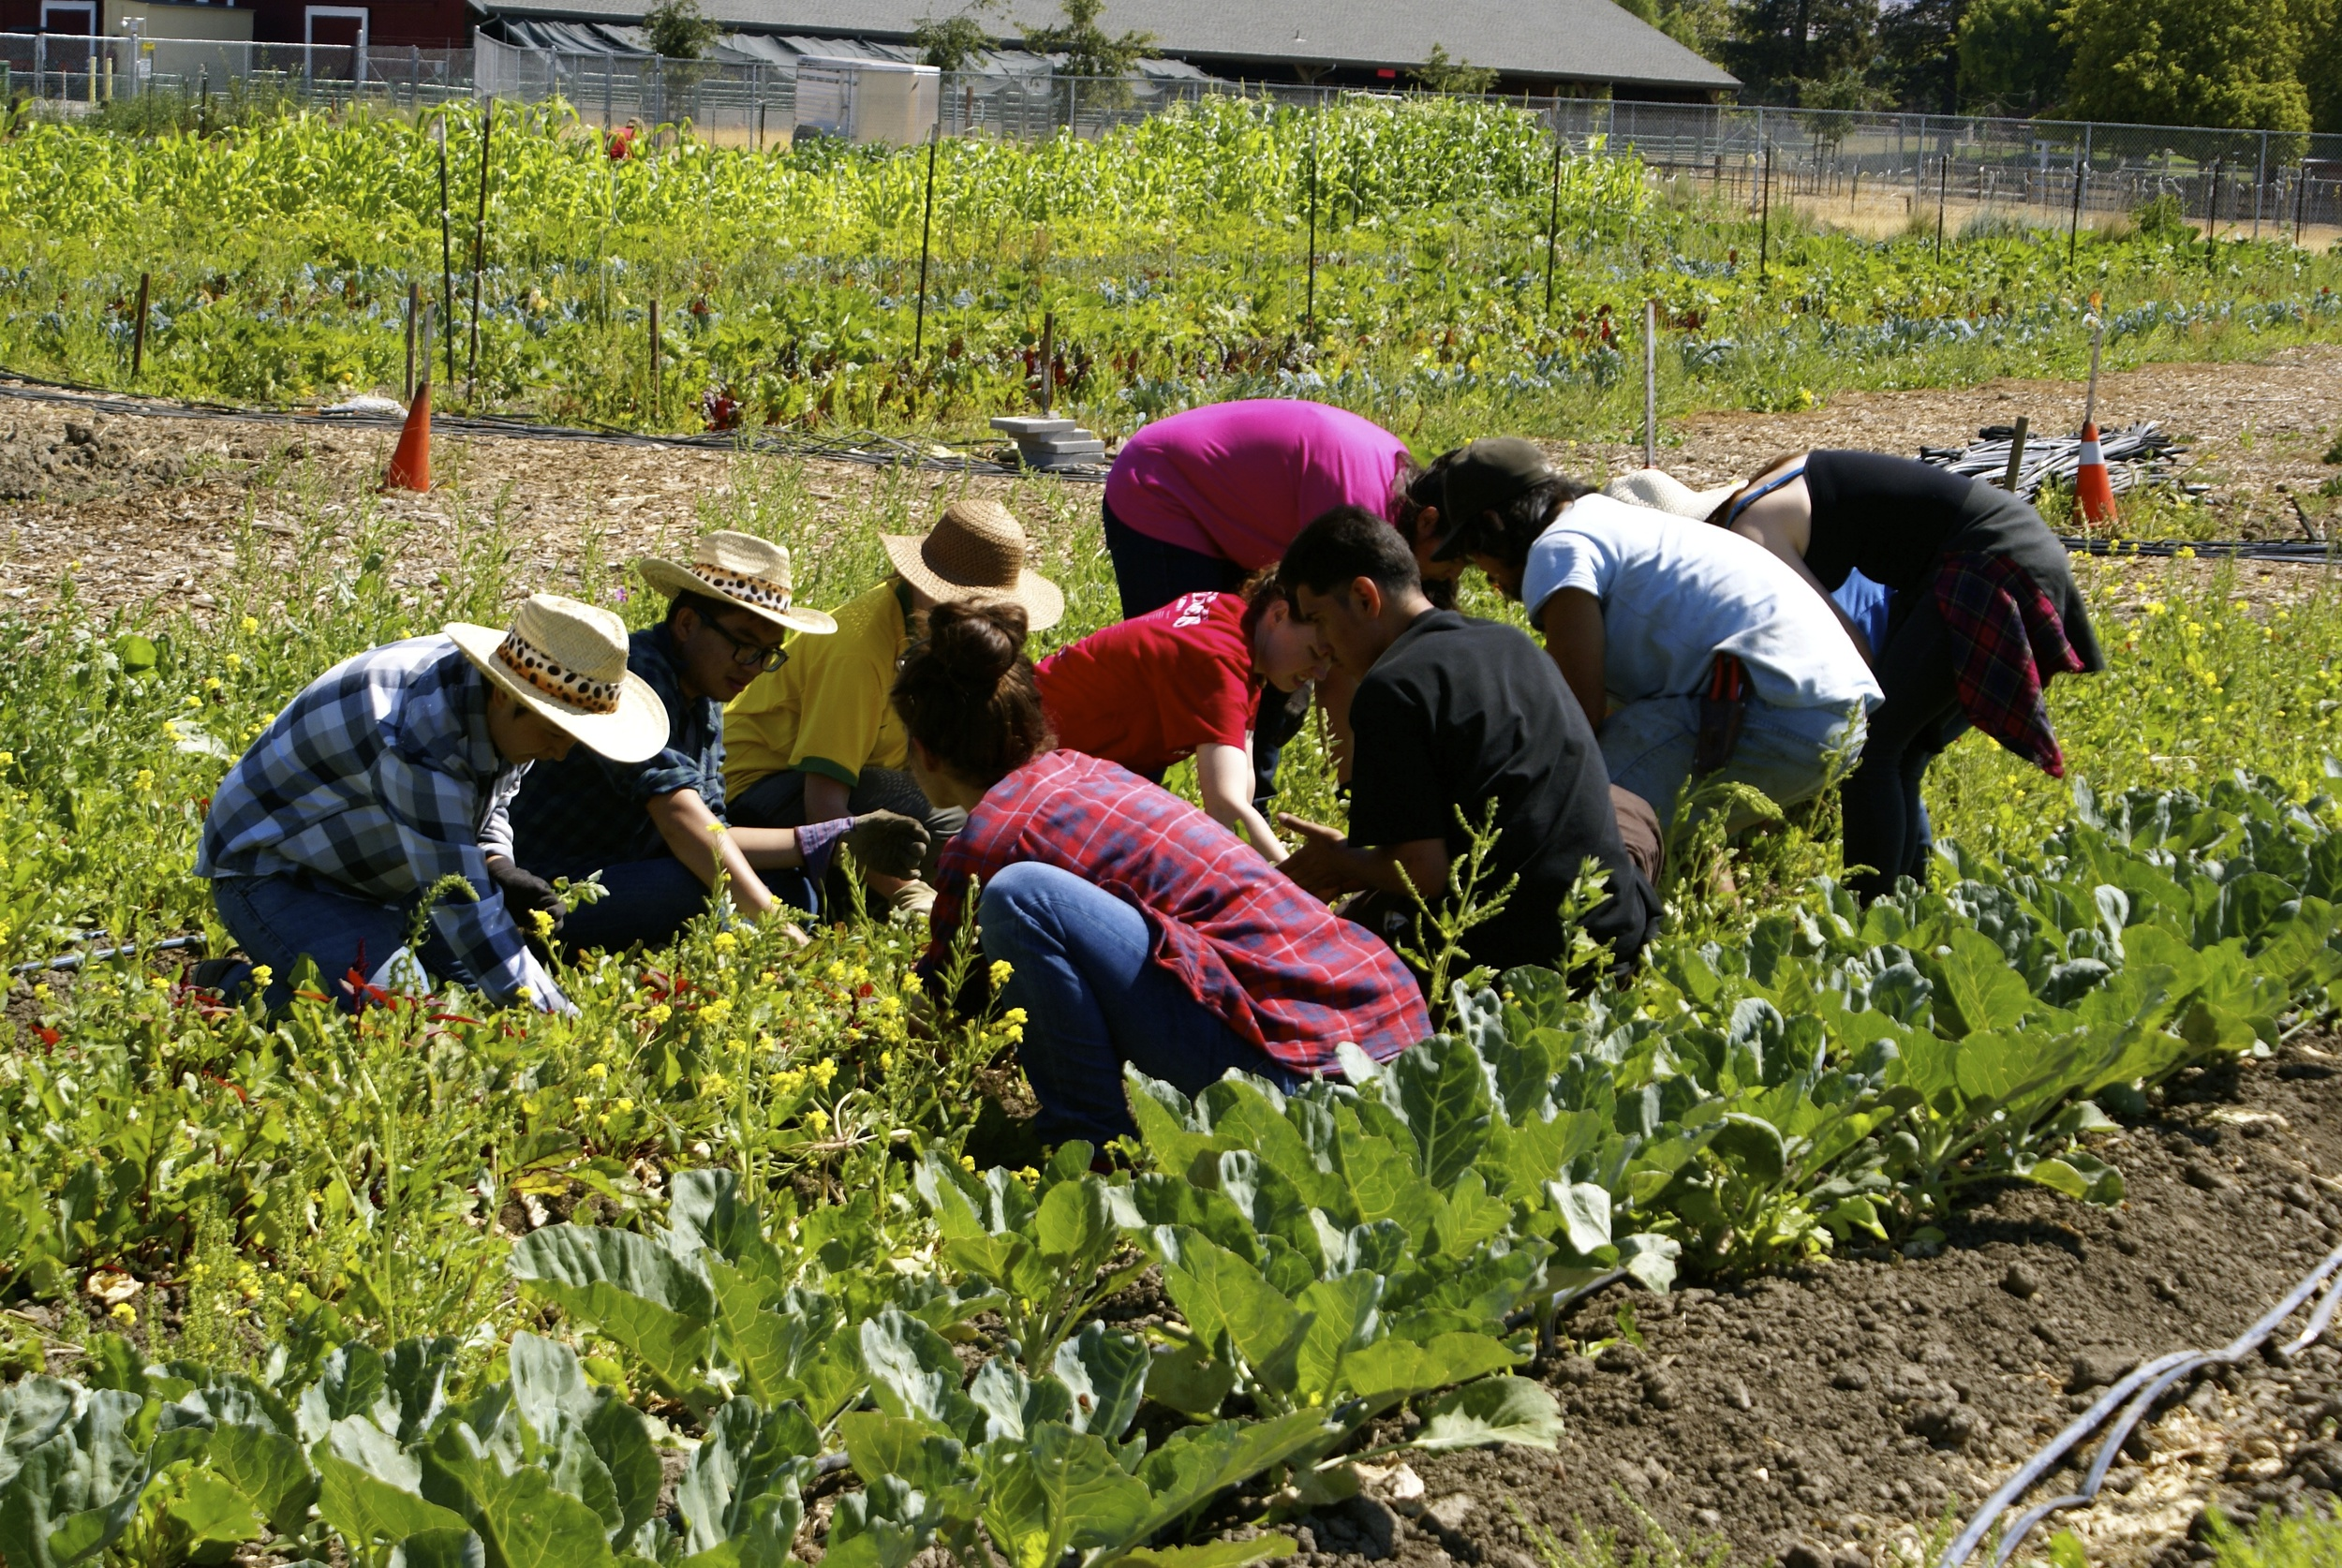 The interns work alongside volunteers to keep the beds free of weeds.